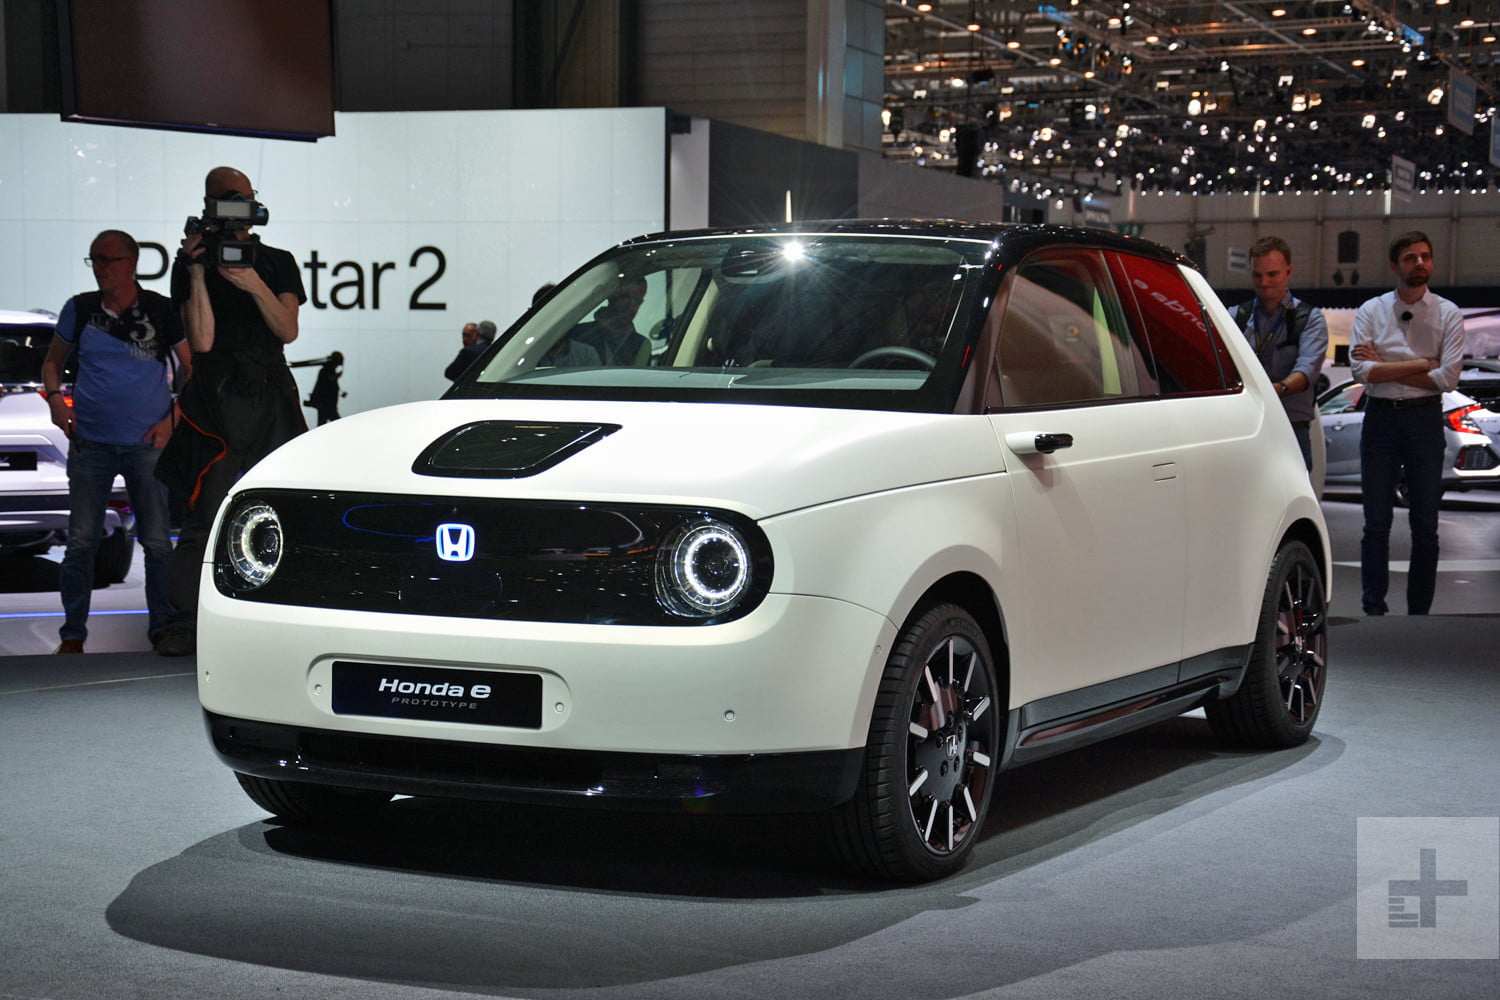 The Honda E Prototype is the electric car Apple should have come out with